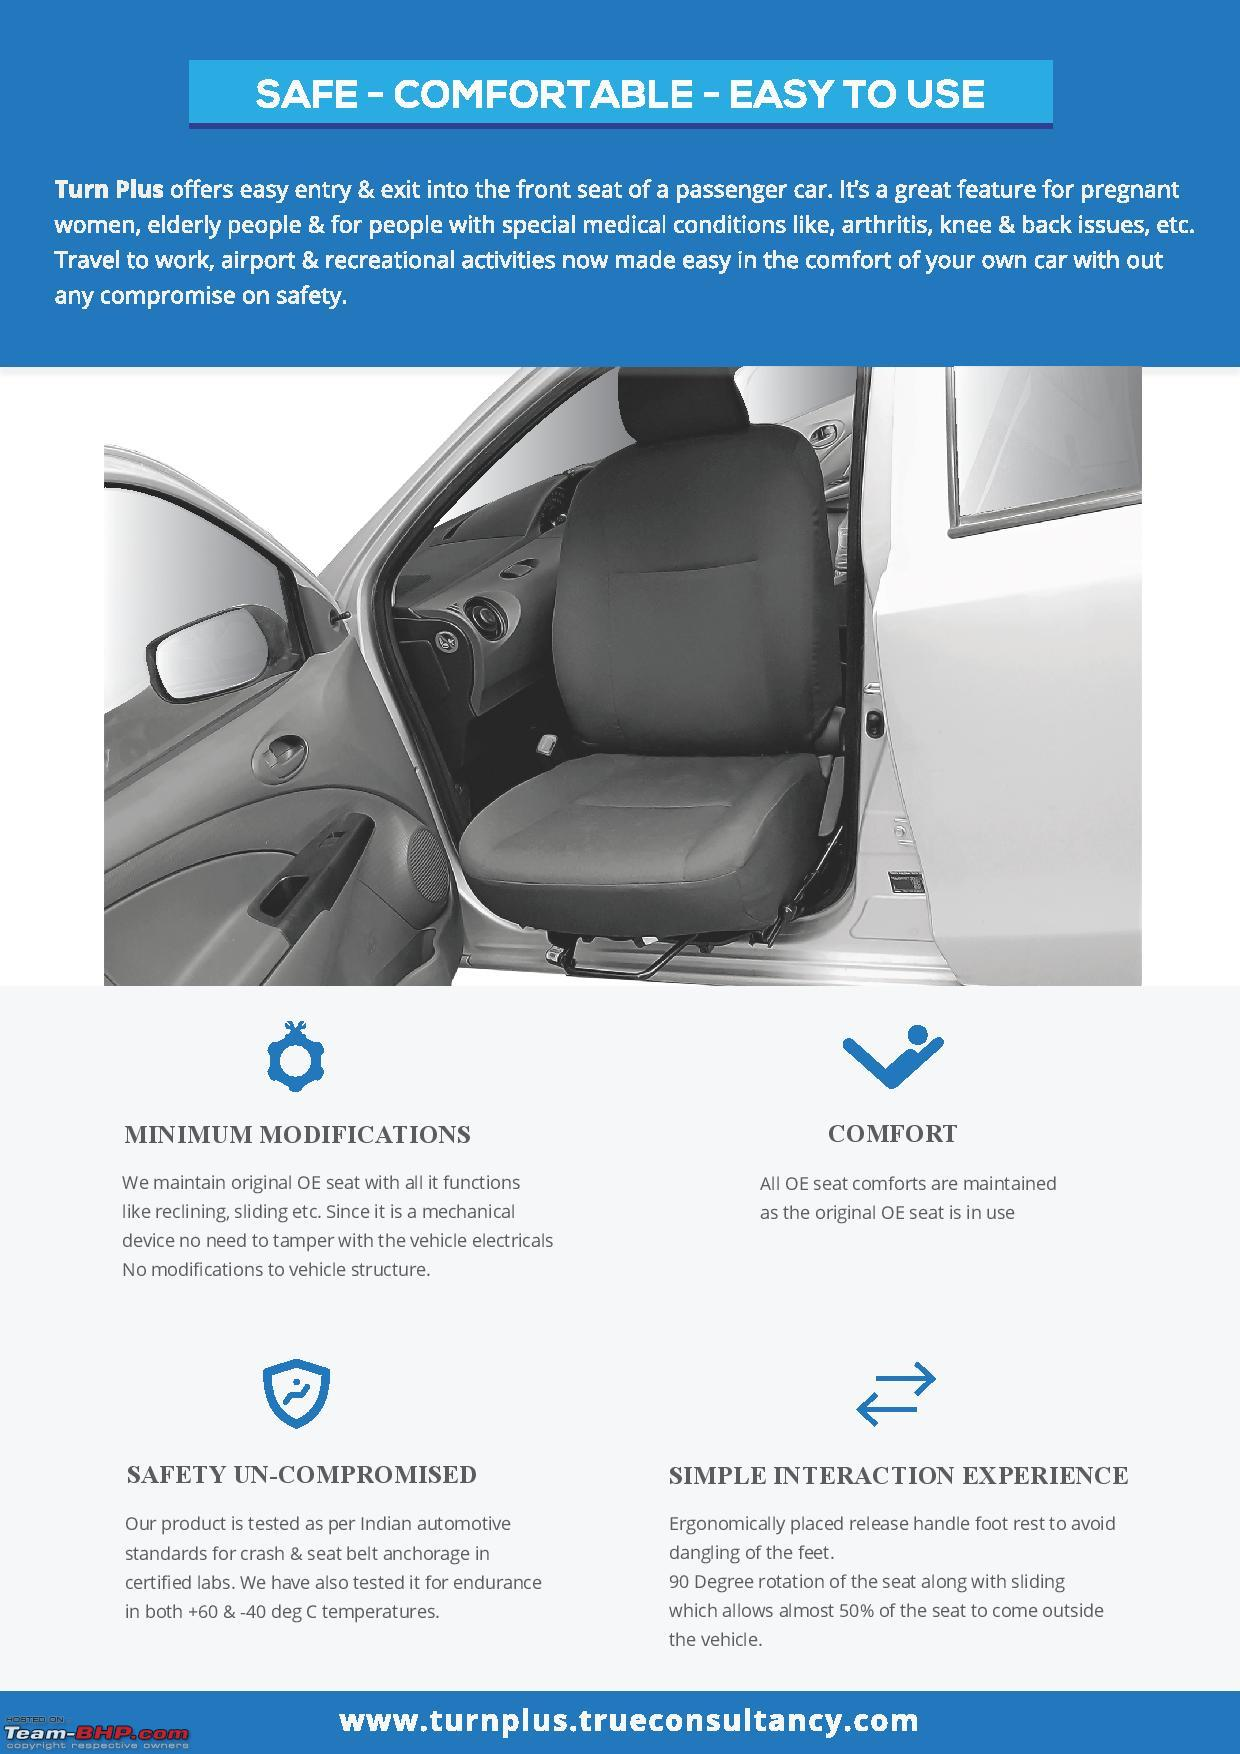 Turnplus A Car Seat That Allows Easy Ingress Egress For The